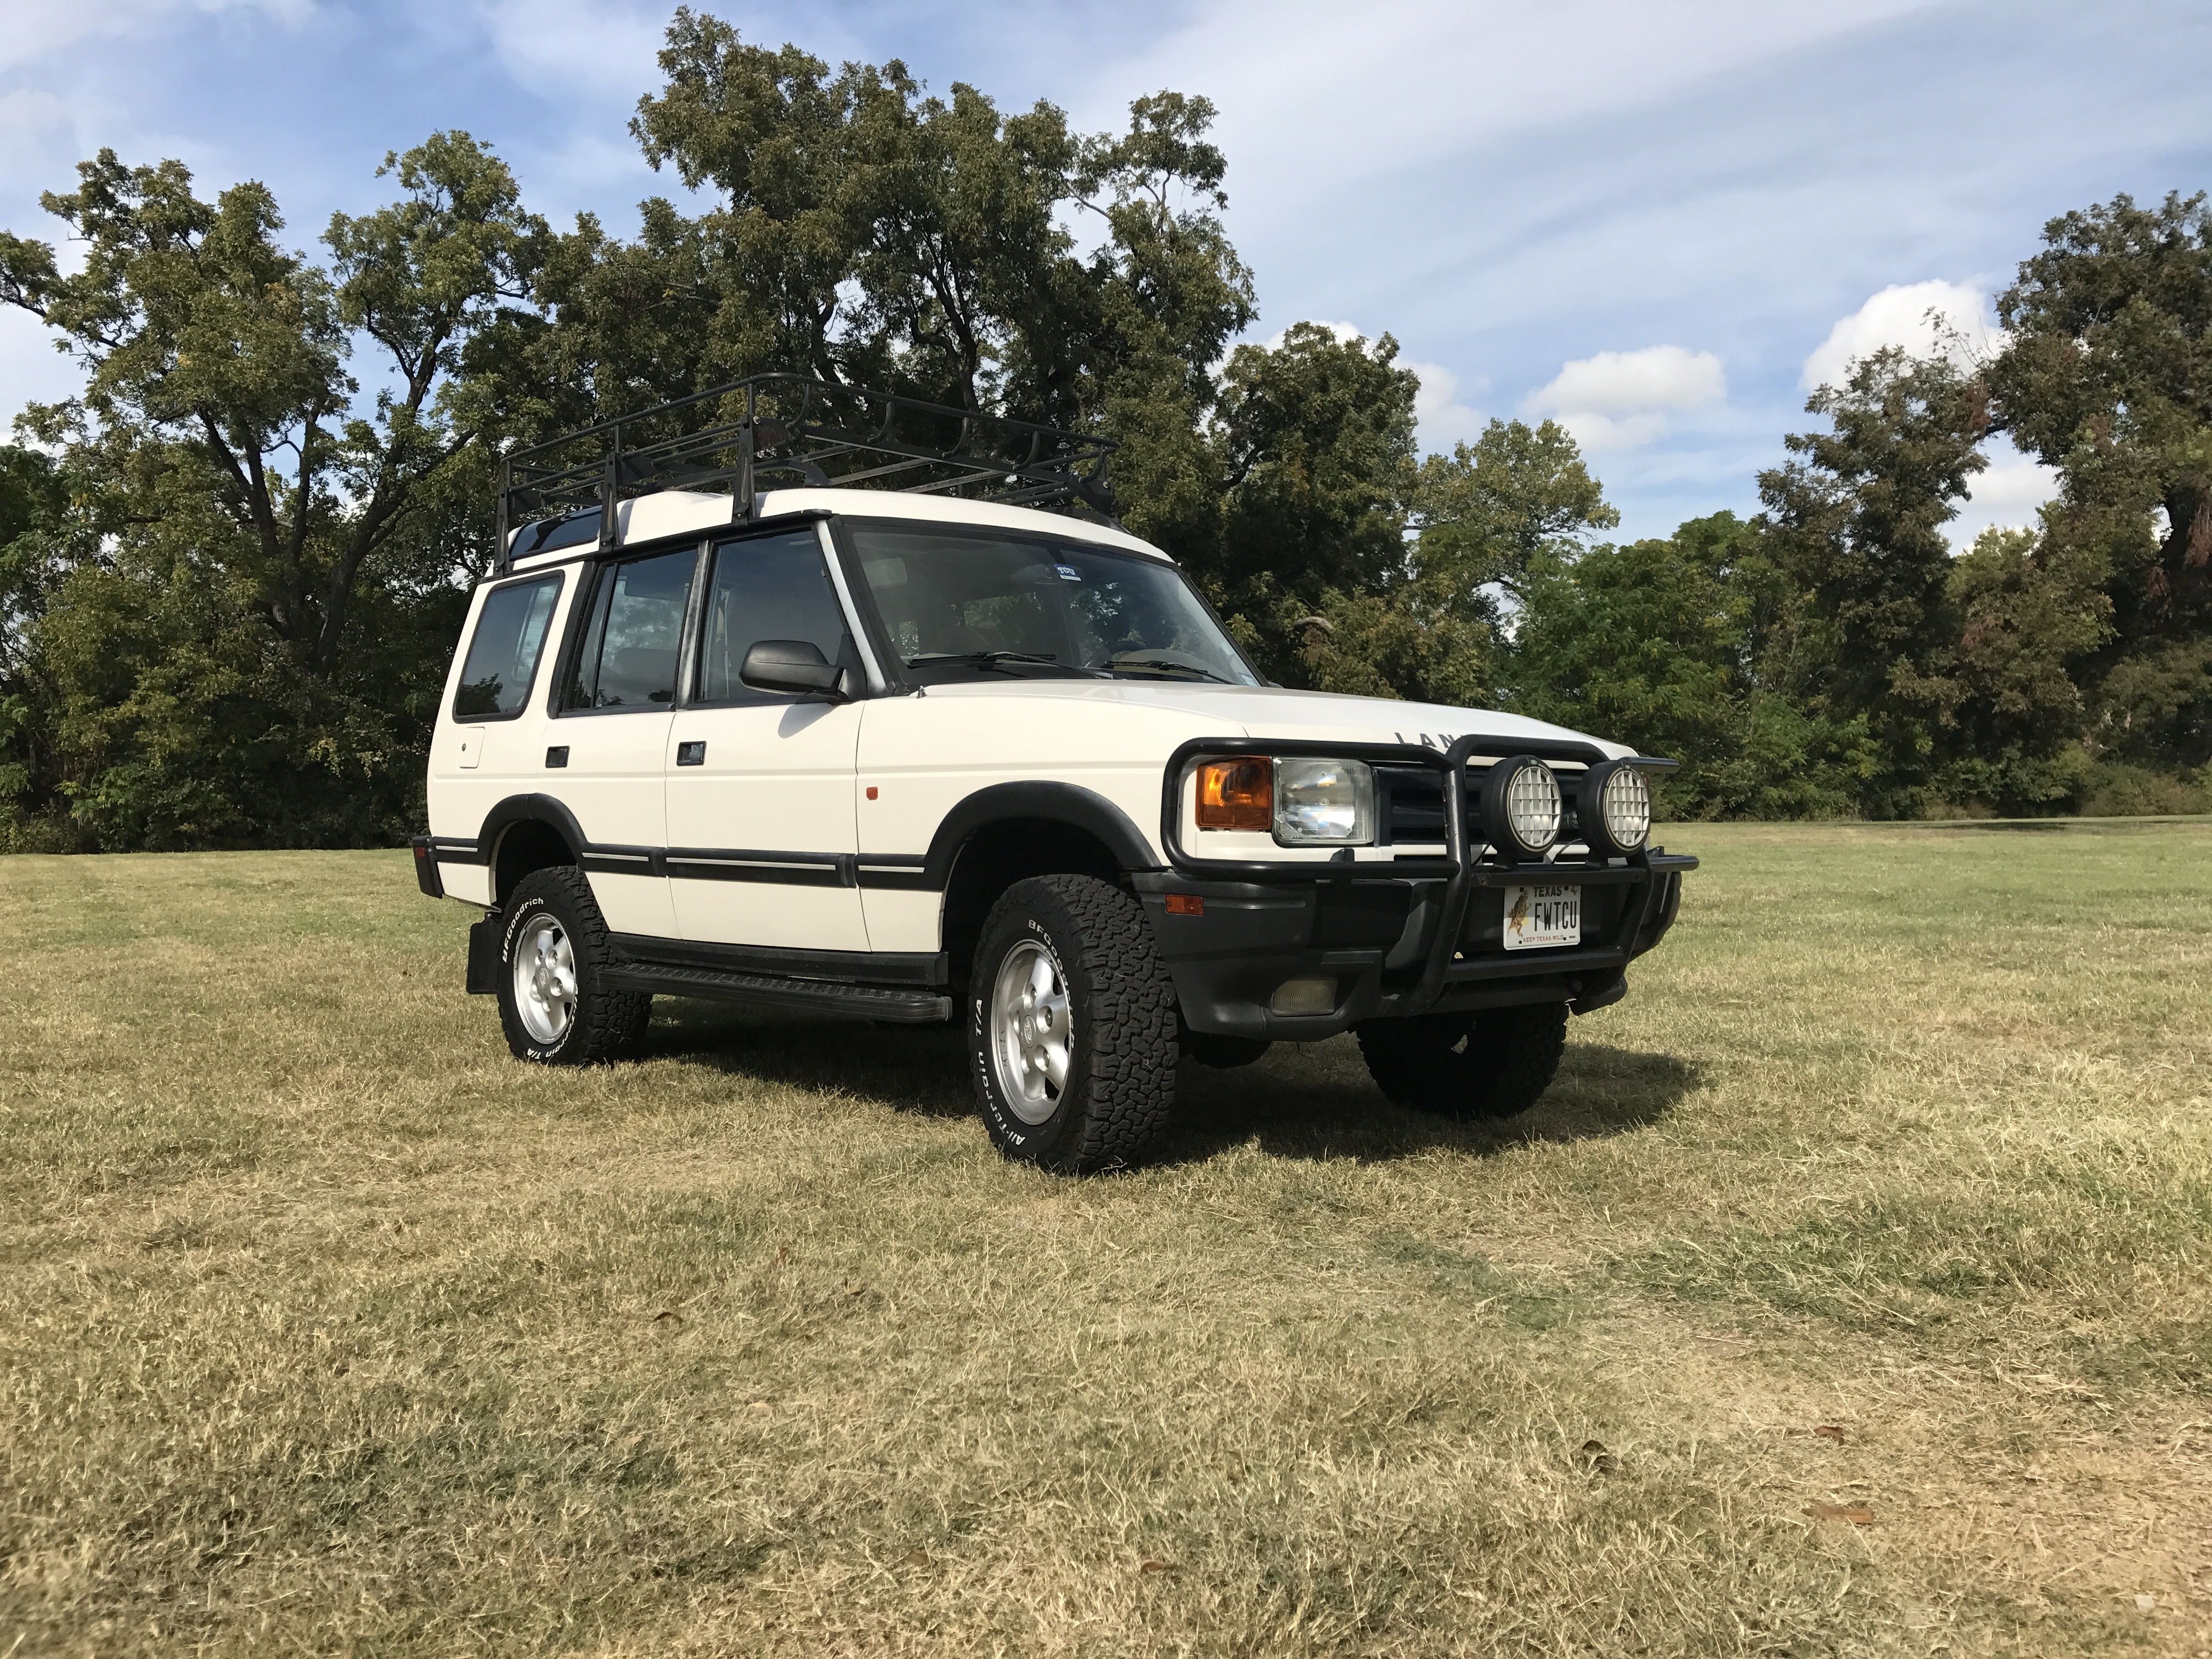 1996 Discovery SE7 Clean 2 owner rust free TX truck $6 000 Land